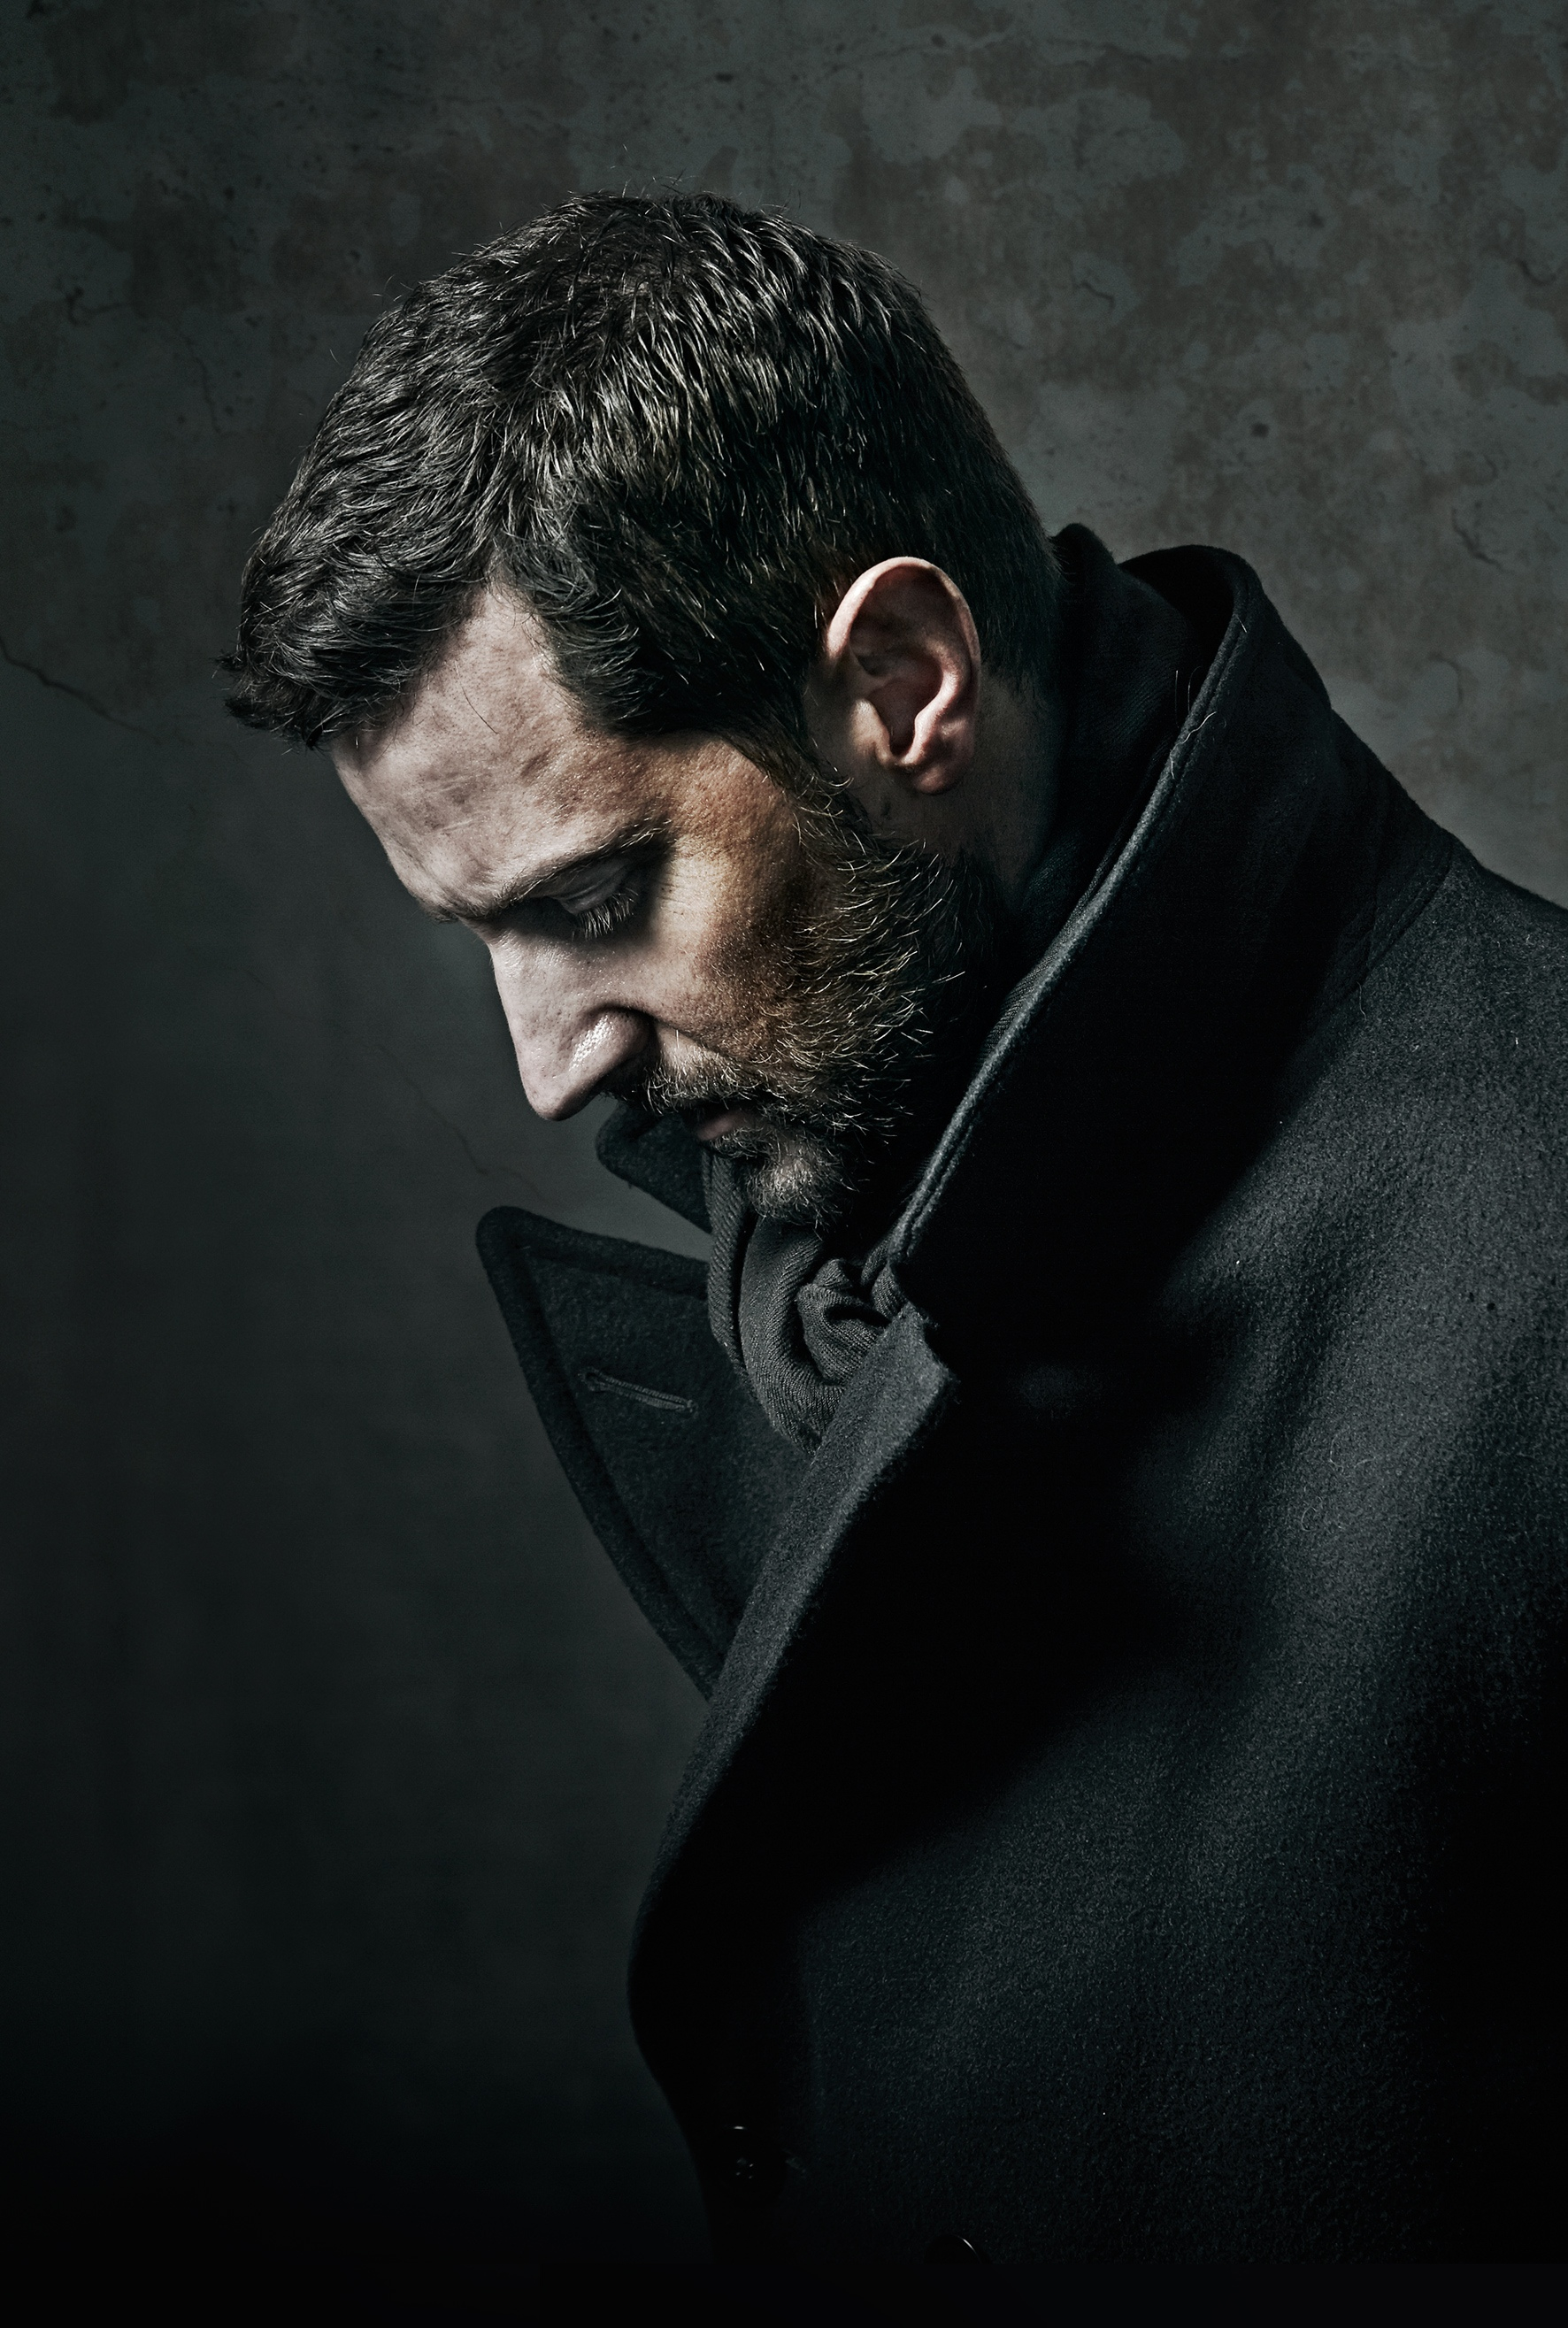 the crusible ''the crucible'' is a story of john proctor, his affair with abigail williams, and the trouble that ensues when he shuns her elizabeth proctor, john's wife, is the symbol of puritan religion in.